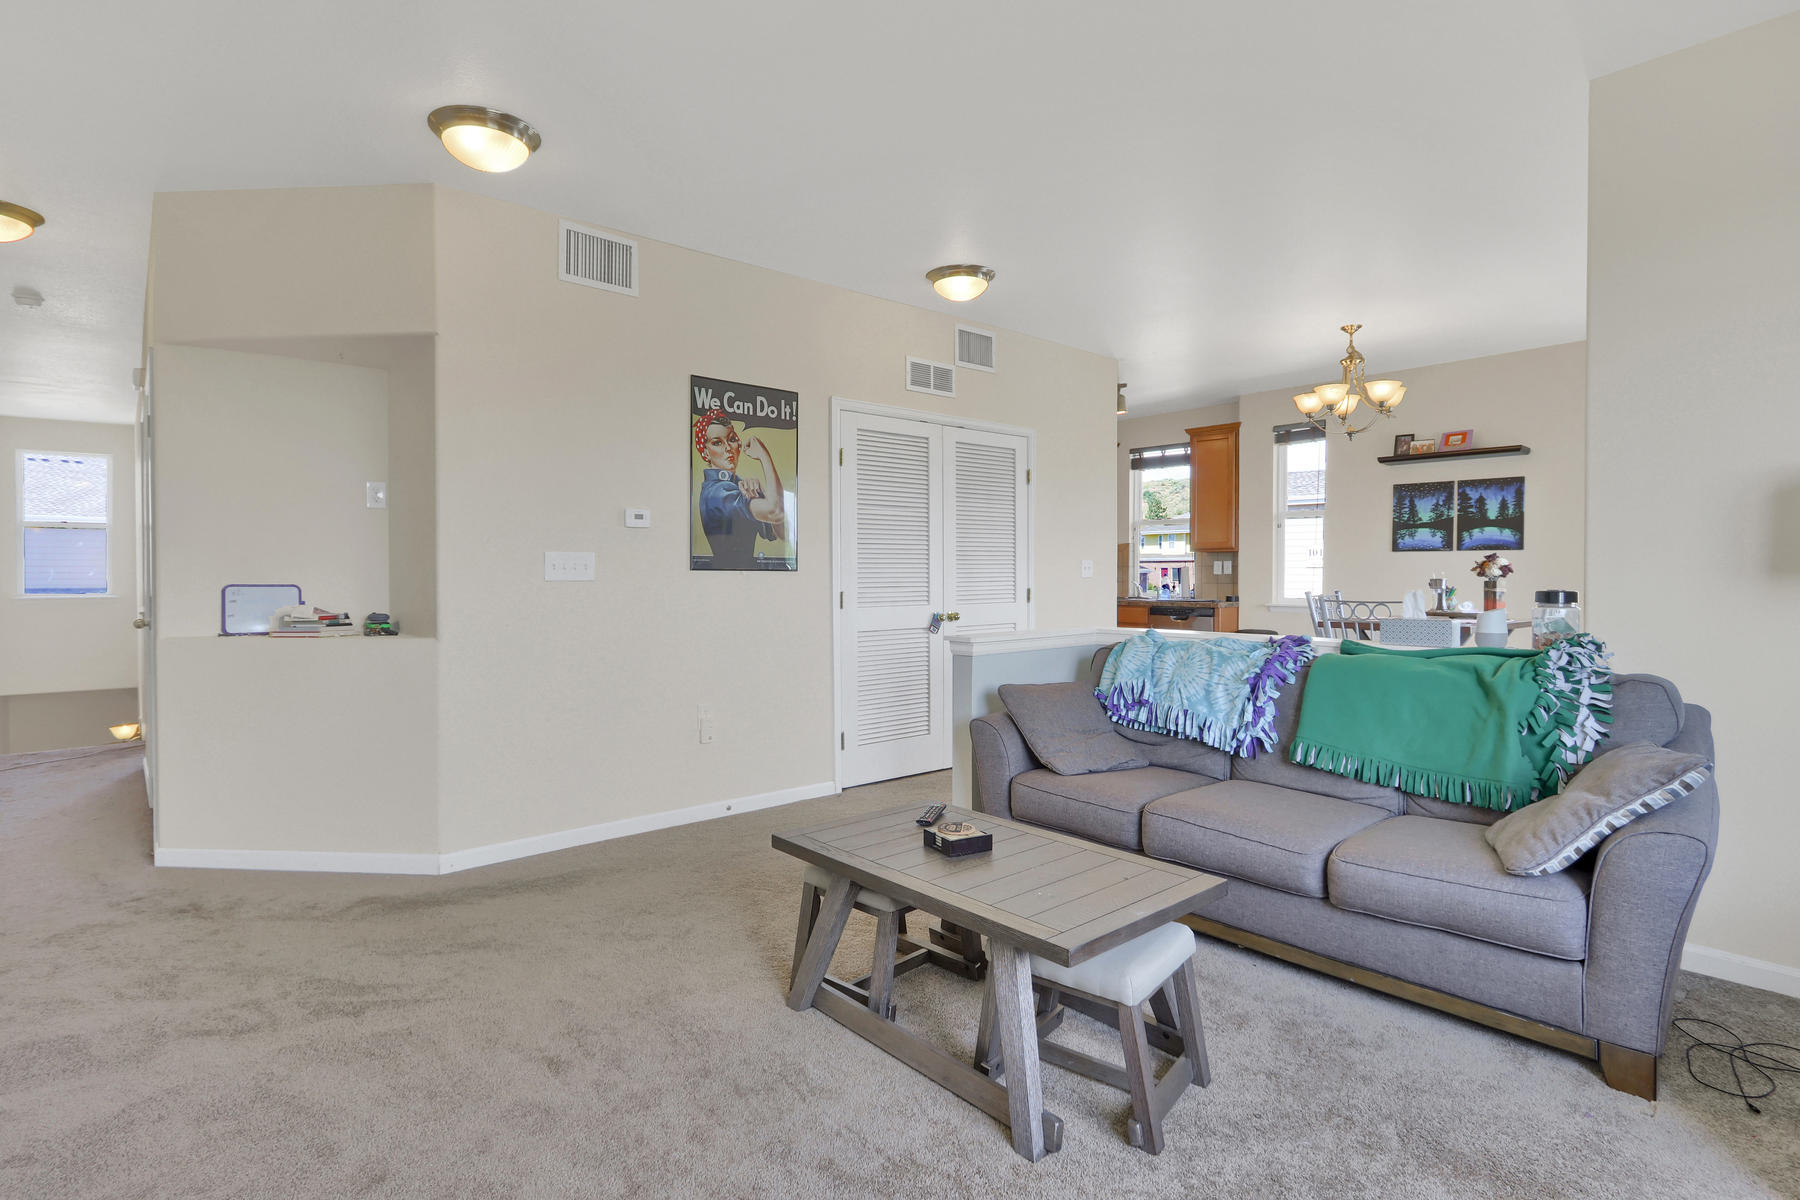 10089 W 55th Drive 204 Arvada-005-012-Living Room-MLS_Size.jpg